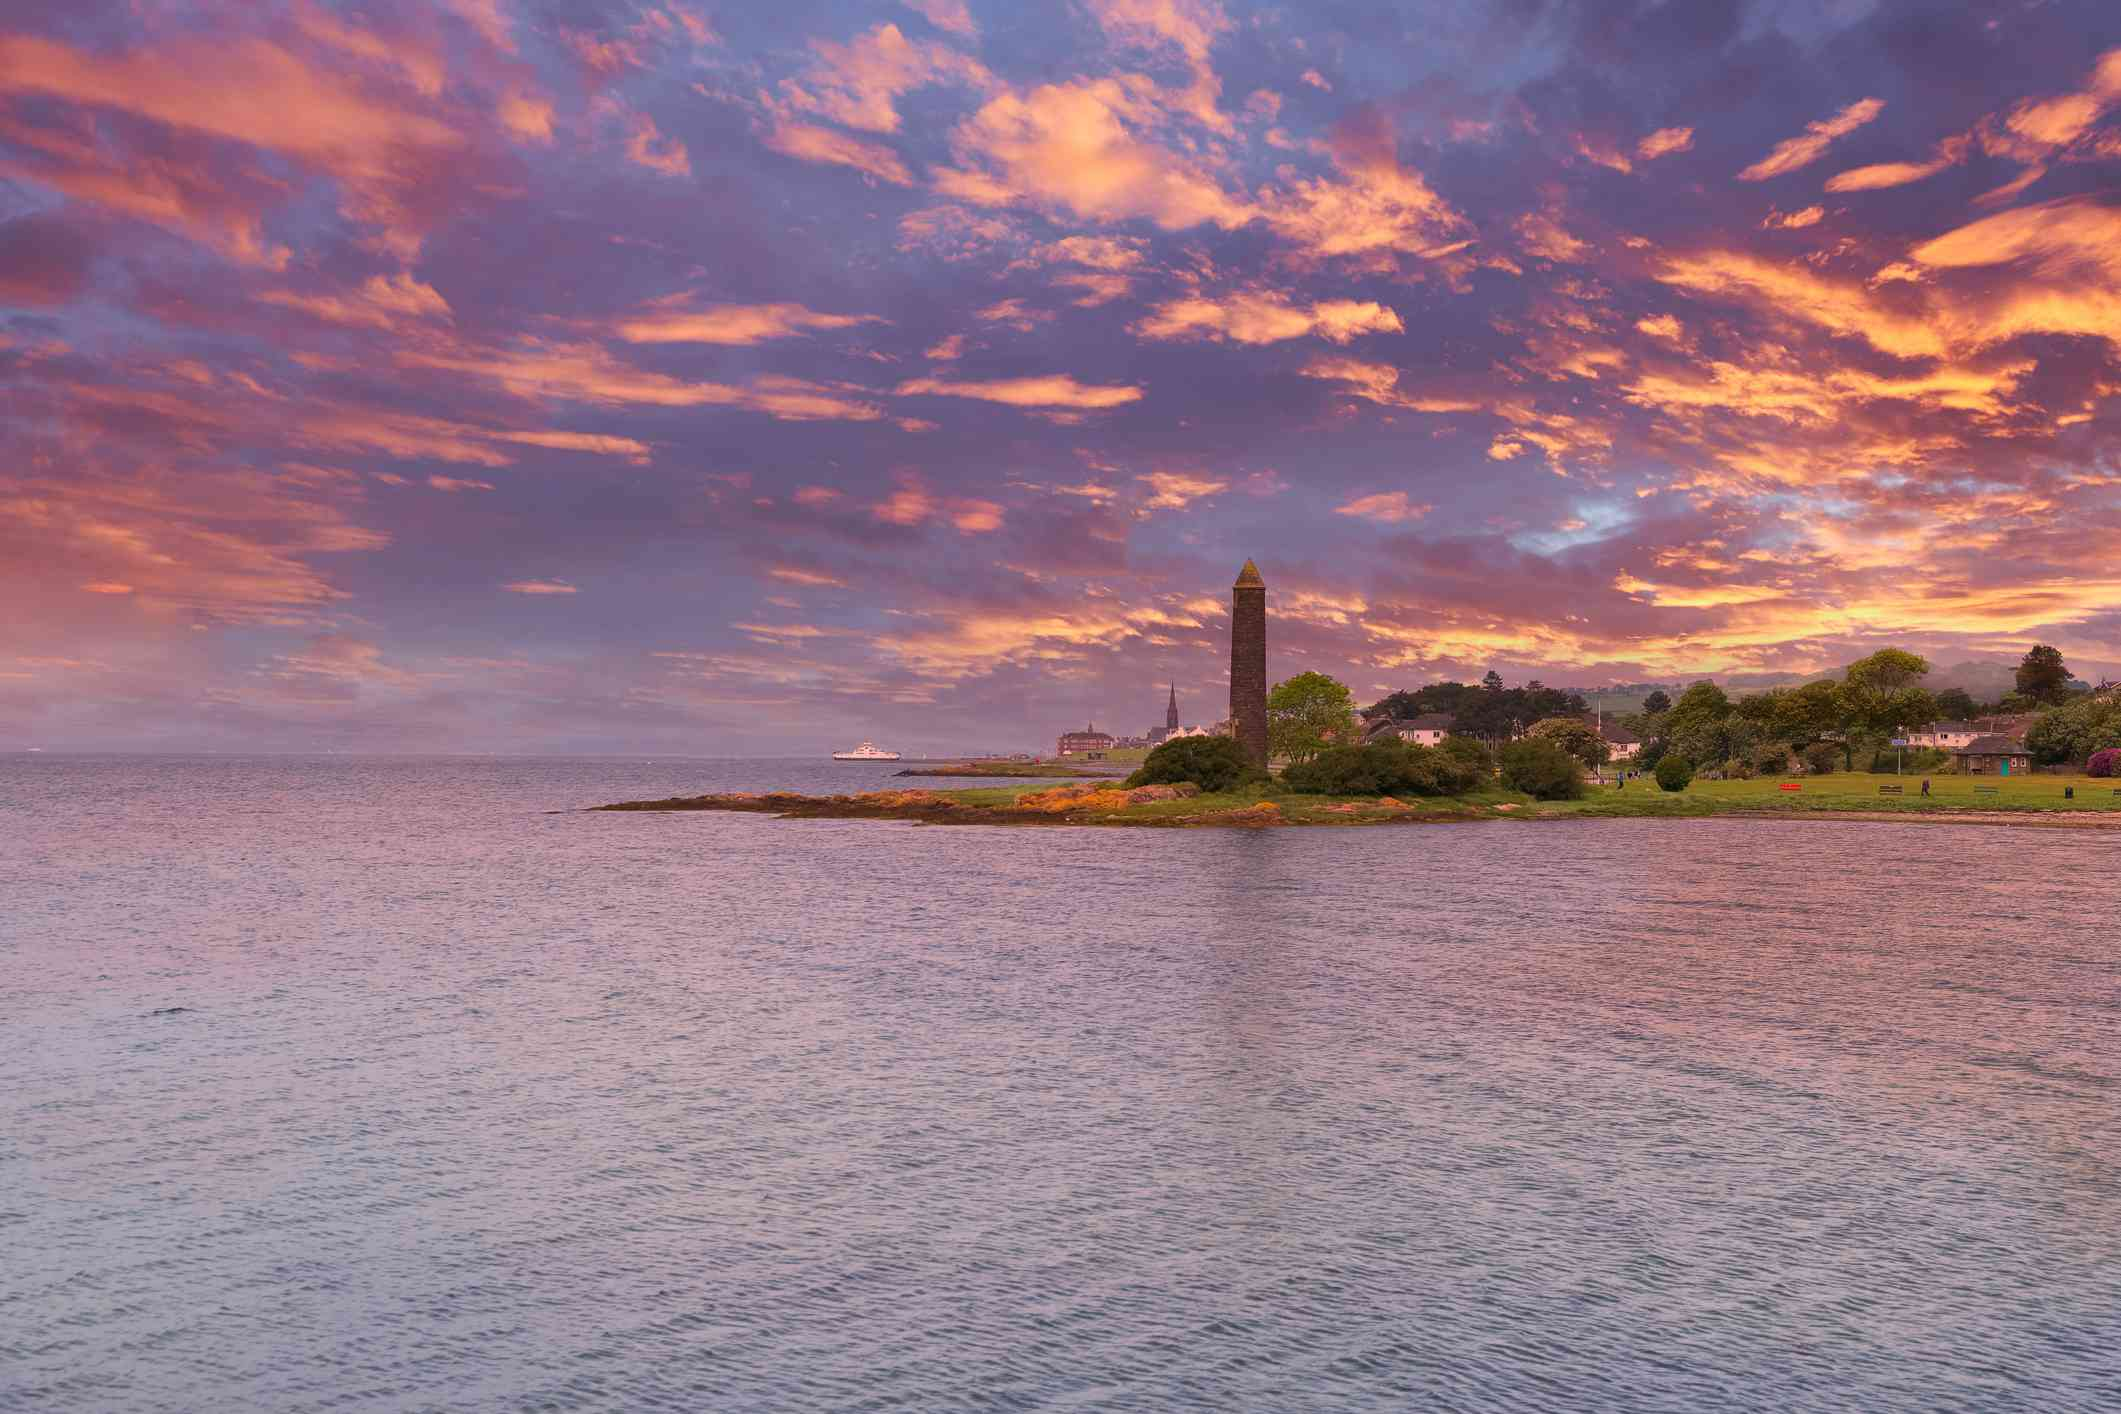 view of Largs scotland from the water with a orange and purple sunset